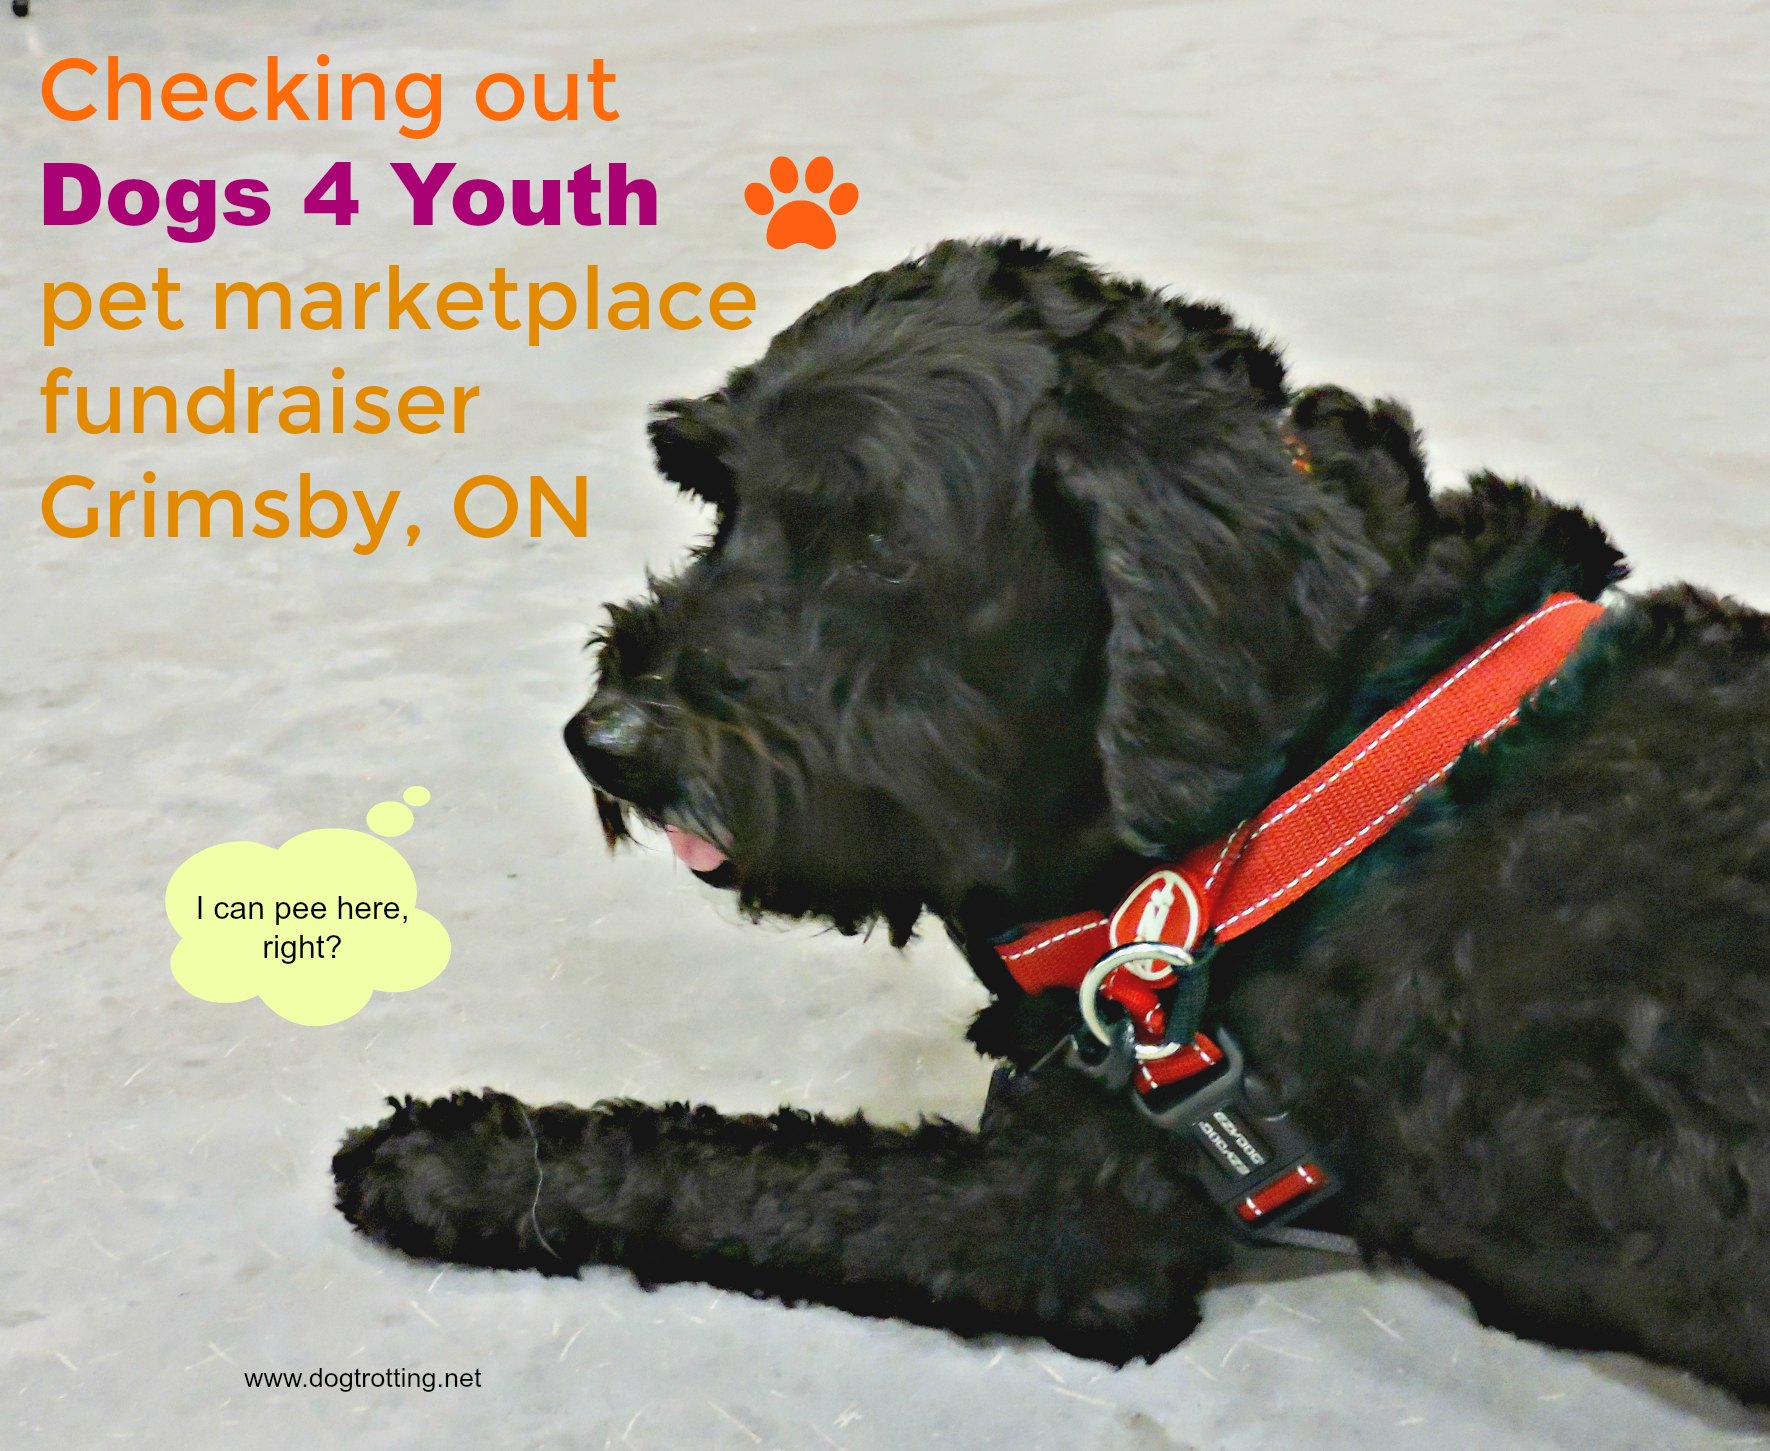 Grimsby, ON: Dogs 4 Youth Annual Dog Marketplace and more….